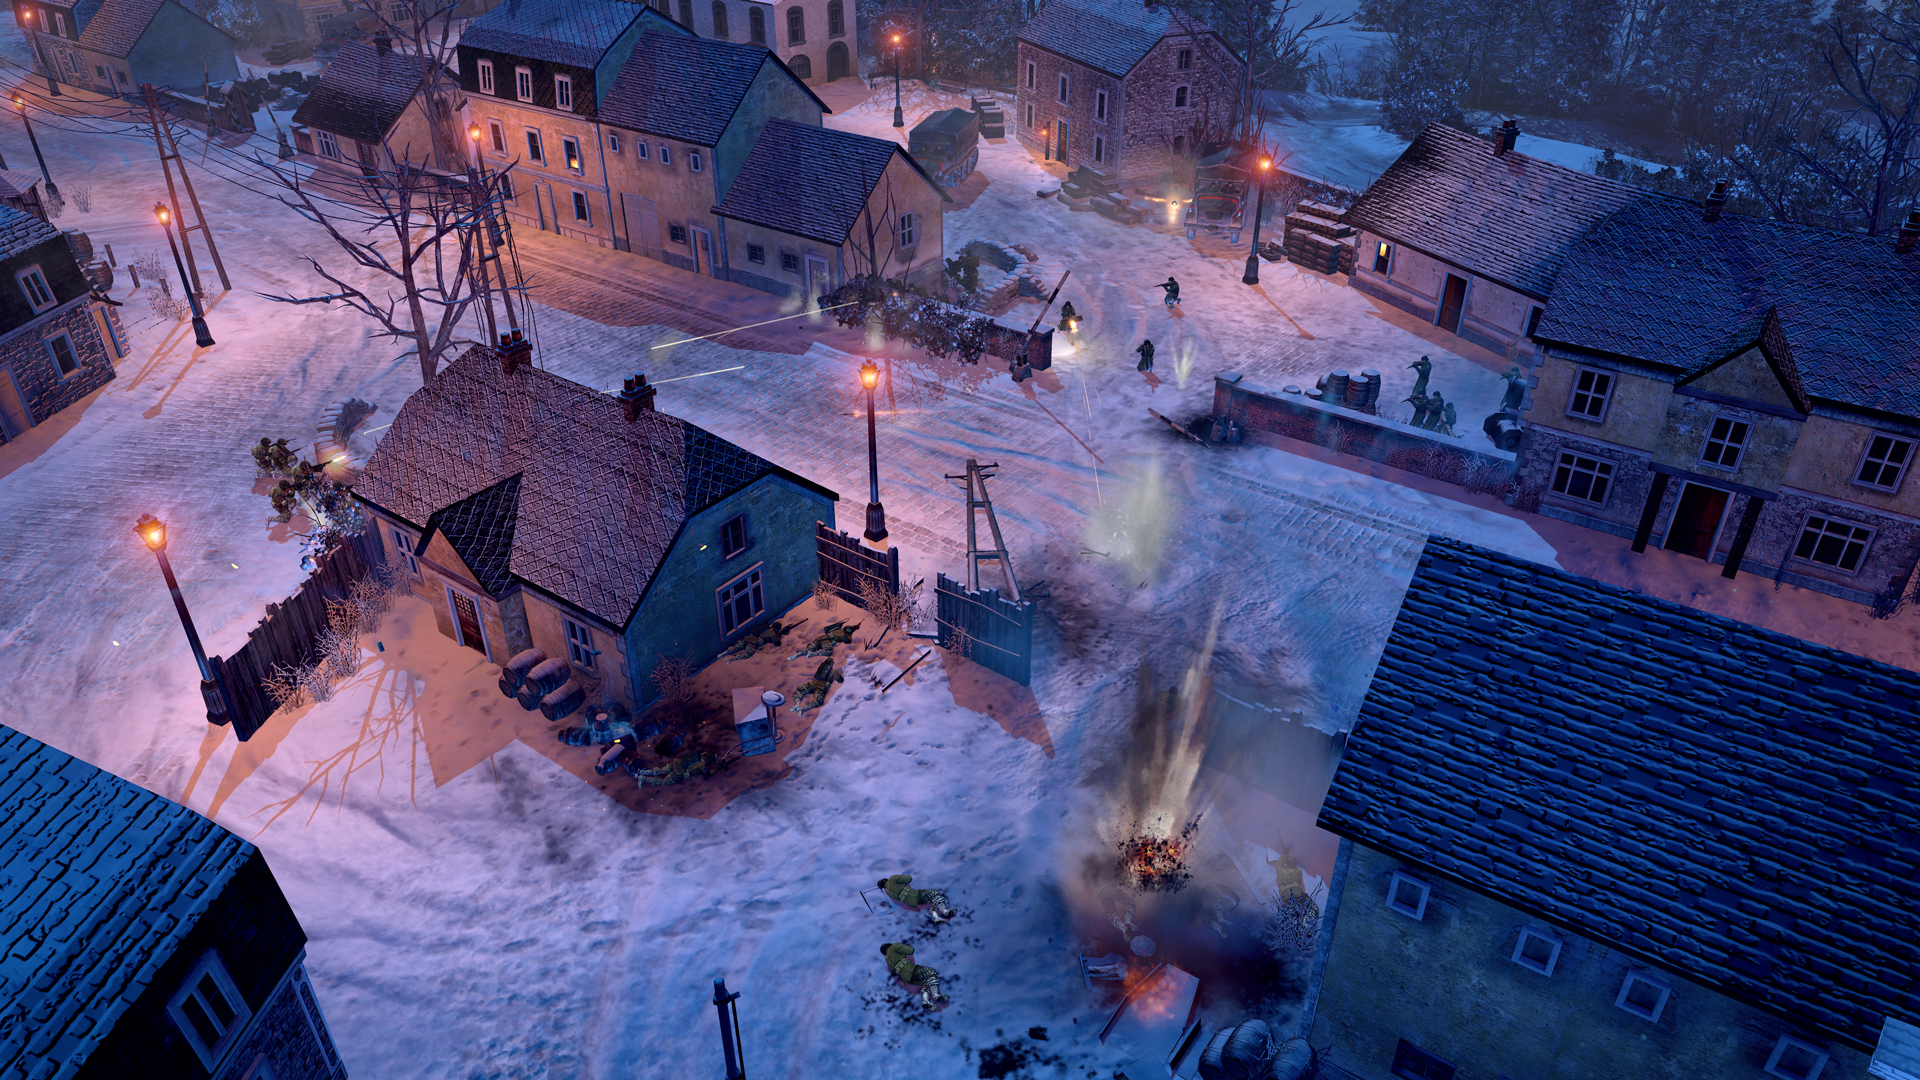 aa screenshot 1 - Company of Heroes 2: Ardennes Assault Review